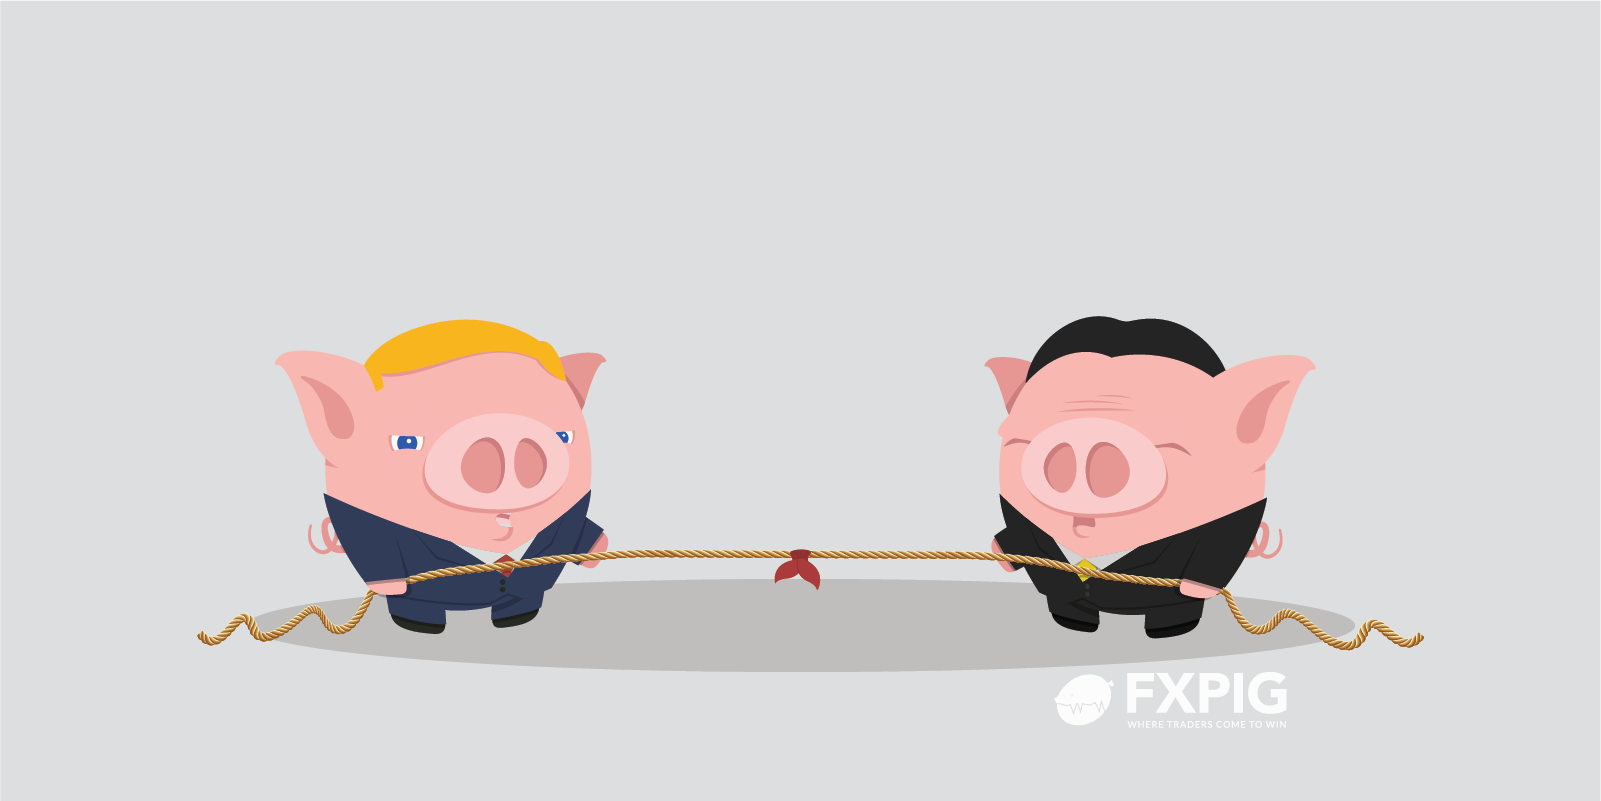 Forex_today_China_Trump_EURUSD_faces-tests_FXPIG